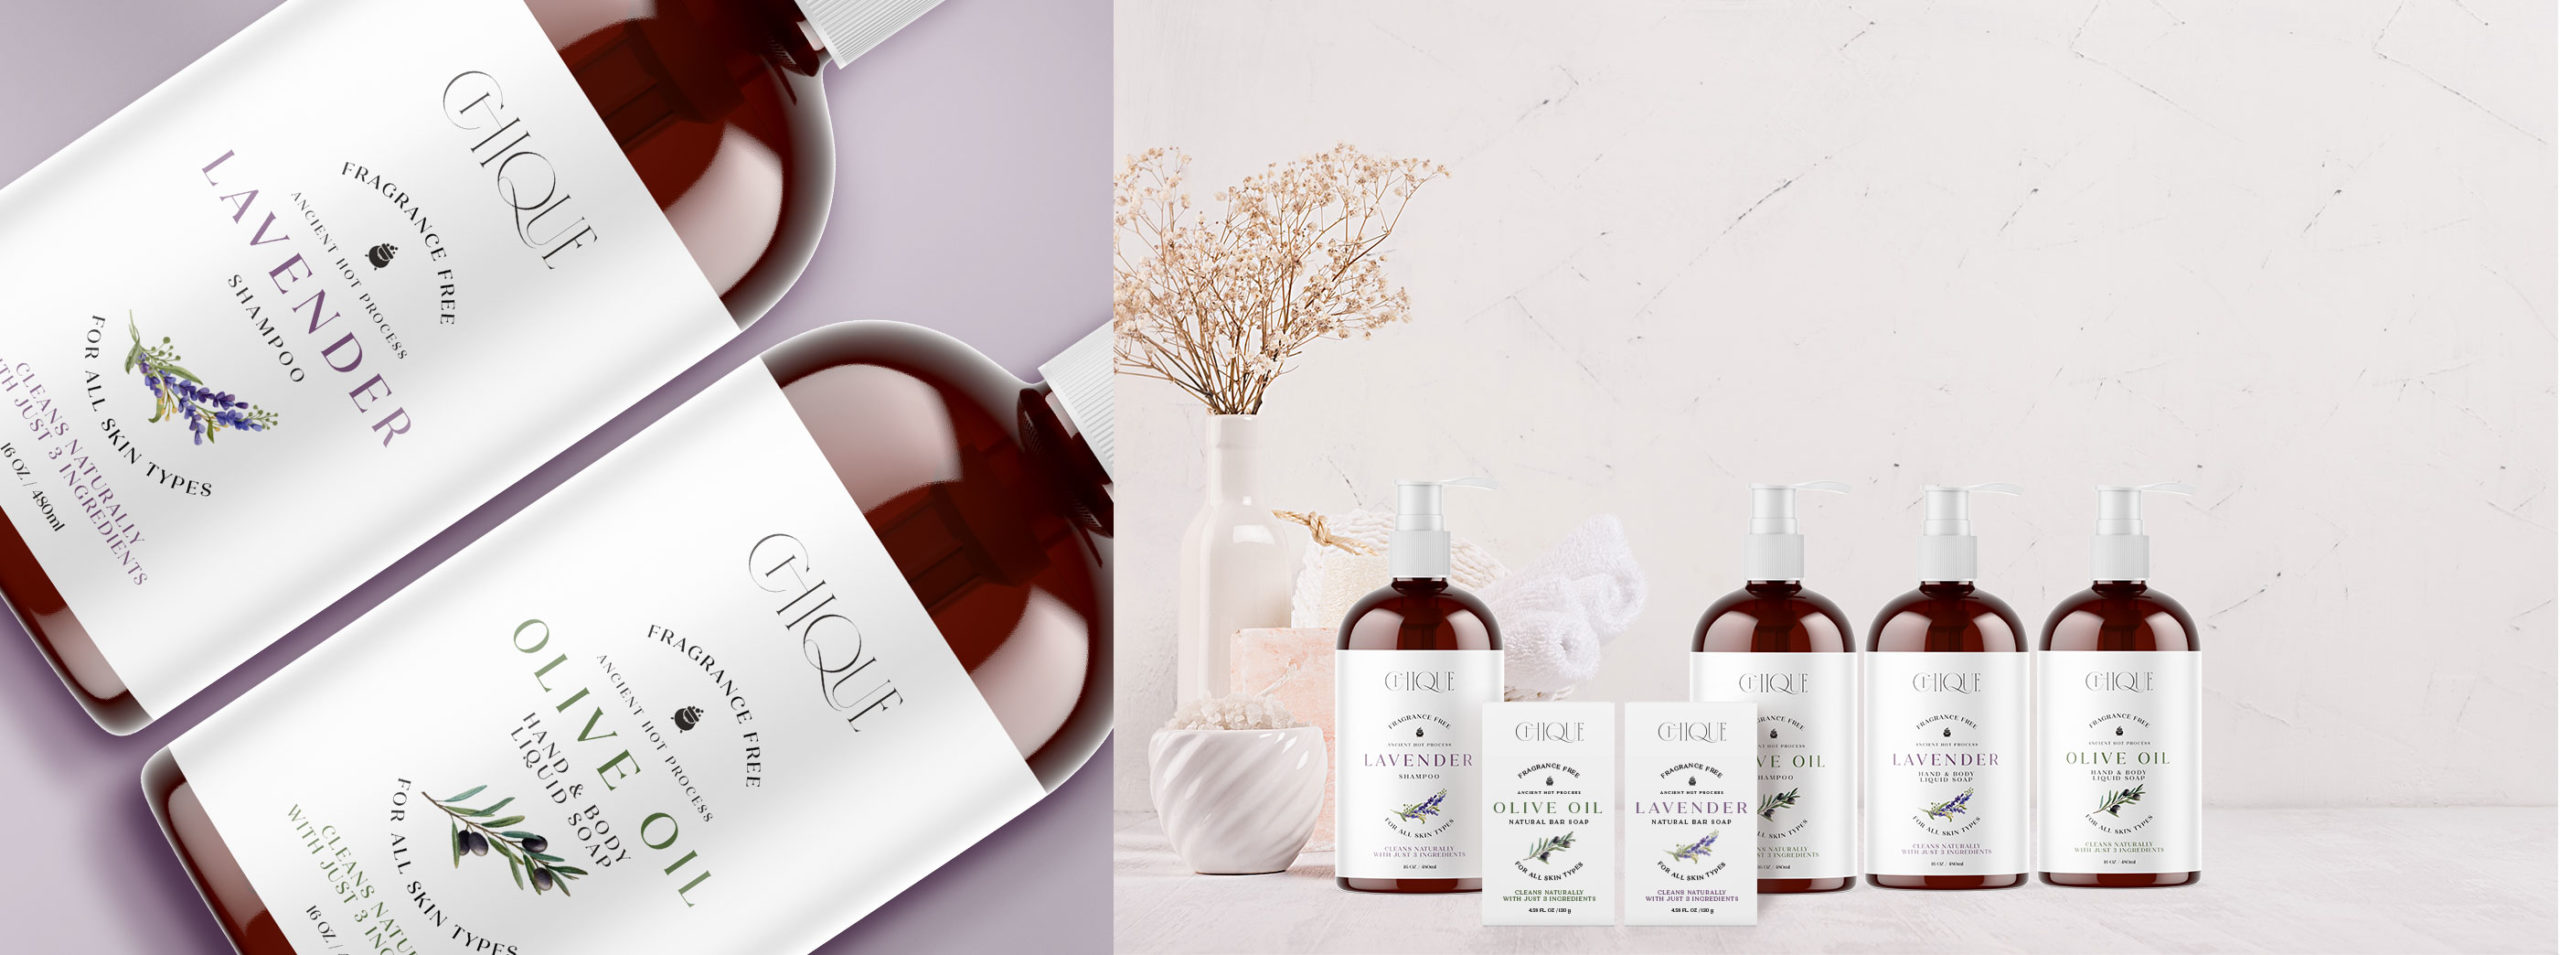 Chique shampoo and soaps – detail and product line - BONB Creative & Design